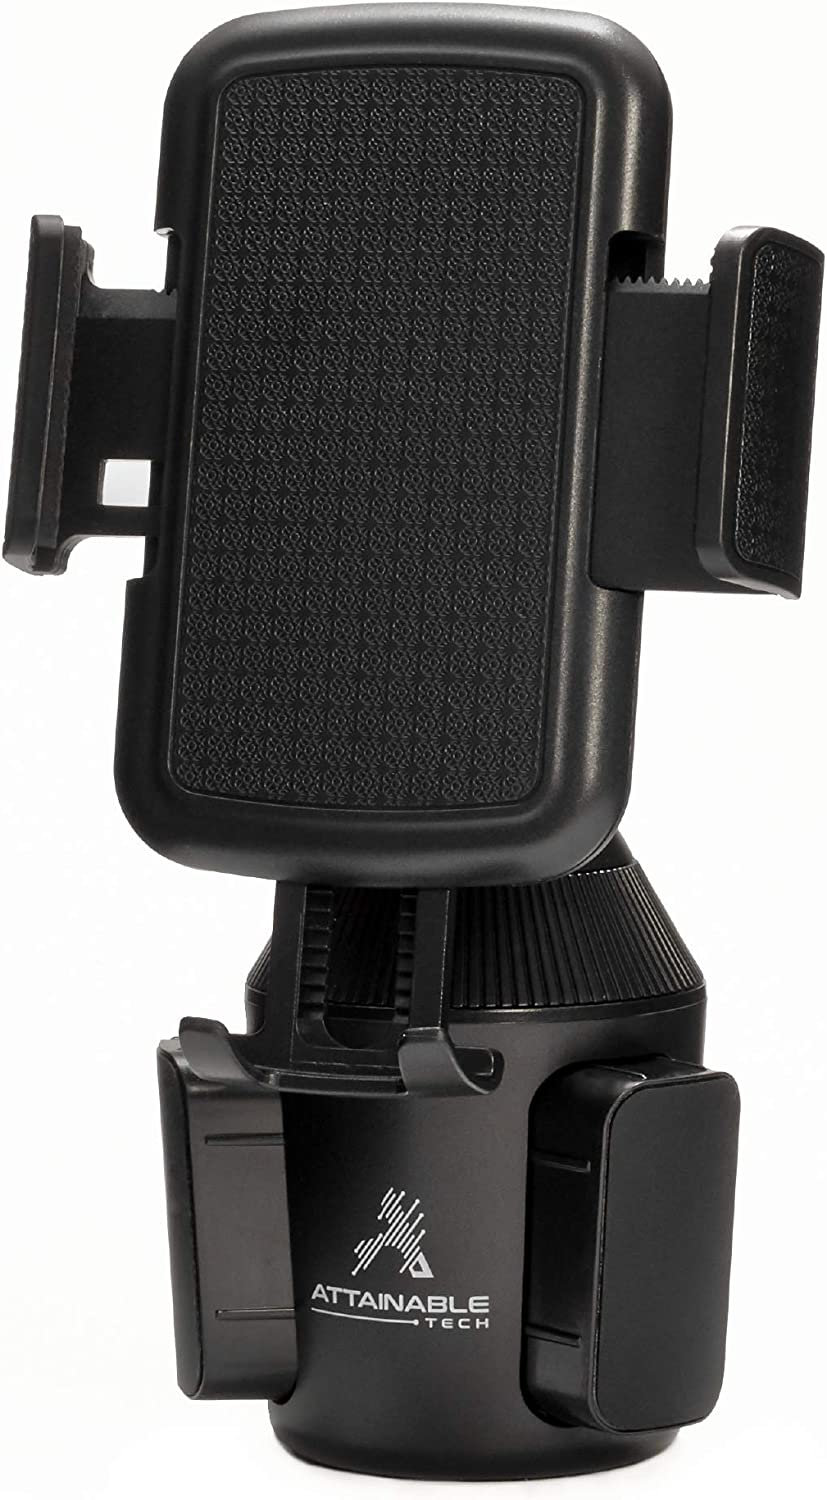 Swivel Cell Phone Car Mount for iPhone ATTAINABLE TECH Universal Car Phone Holder Low Profile Cup Holder Phone Mount Wont Obstruct Your View While Driving Samsung Galaxy Note Max /& More